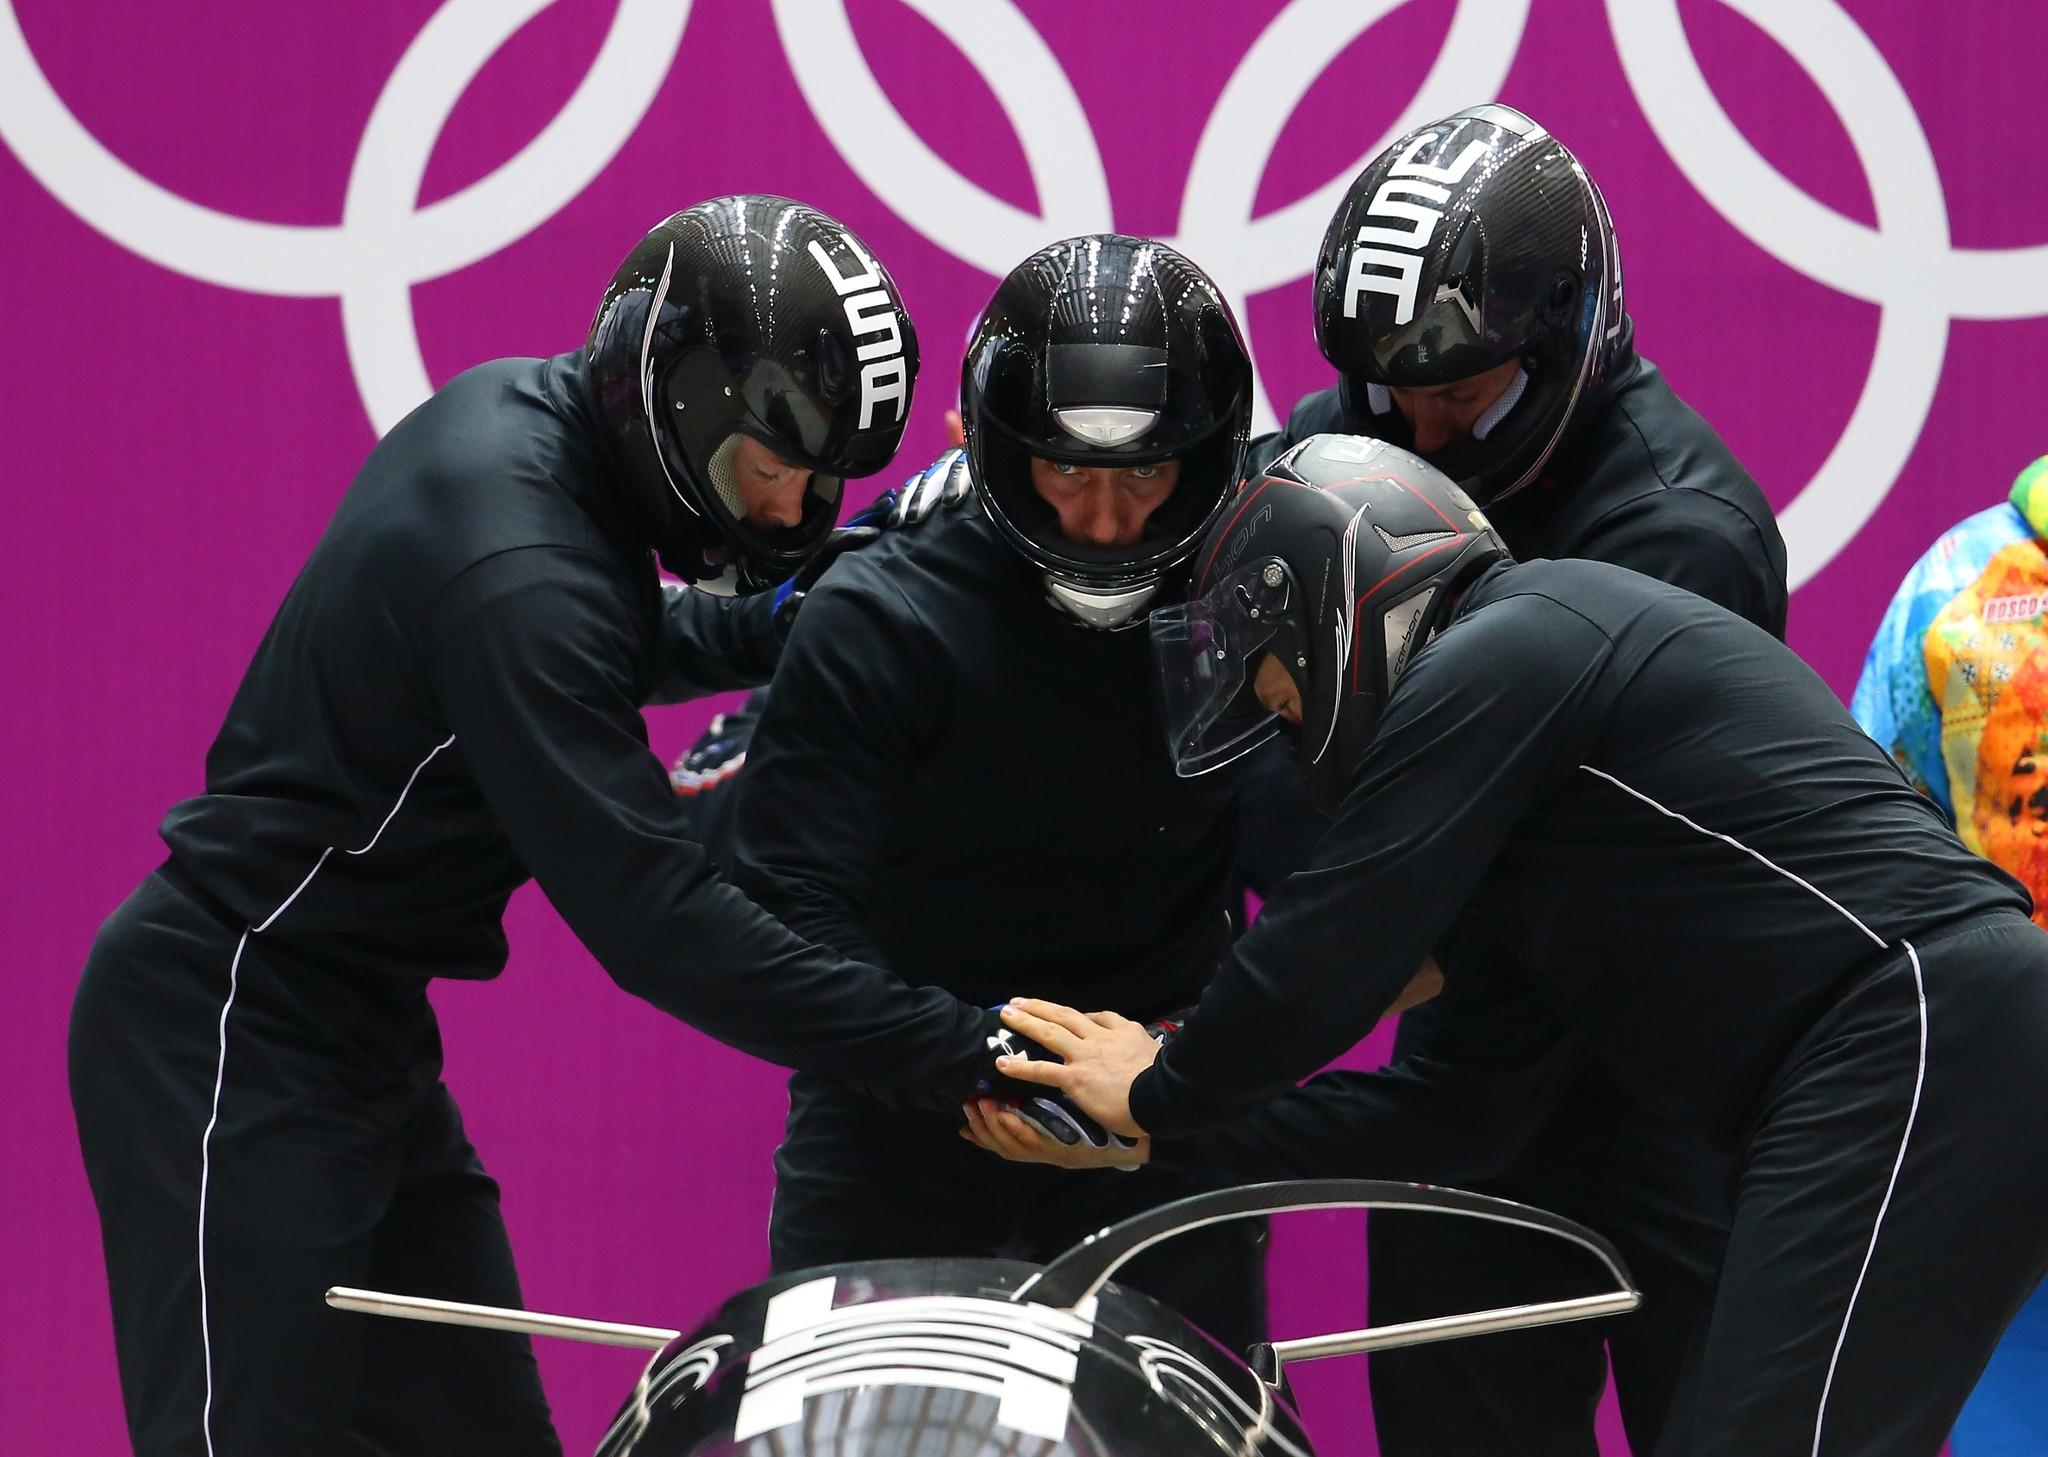 Steven Holcomb of USA and his crew prepare to start during a four-man bobsleigh practice session on Day 14 of the Sochi 2014 Winter Olympics at Sliding Center Sanki on February 21, 2014 in Sochi, Russia.